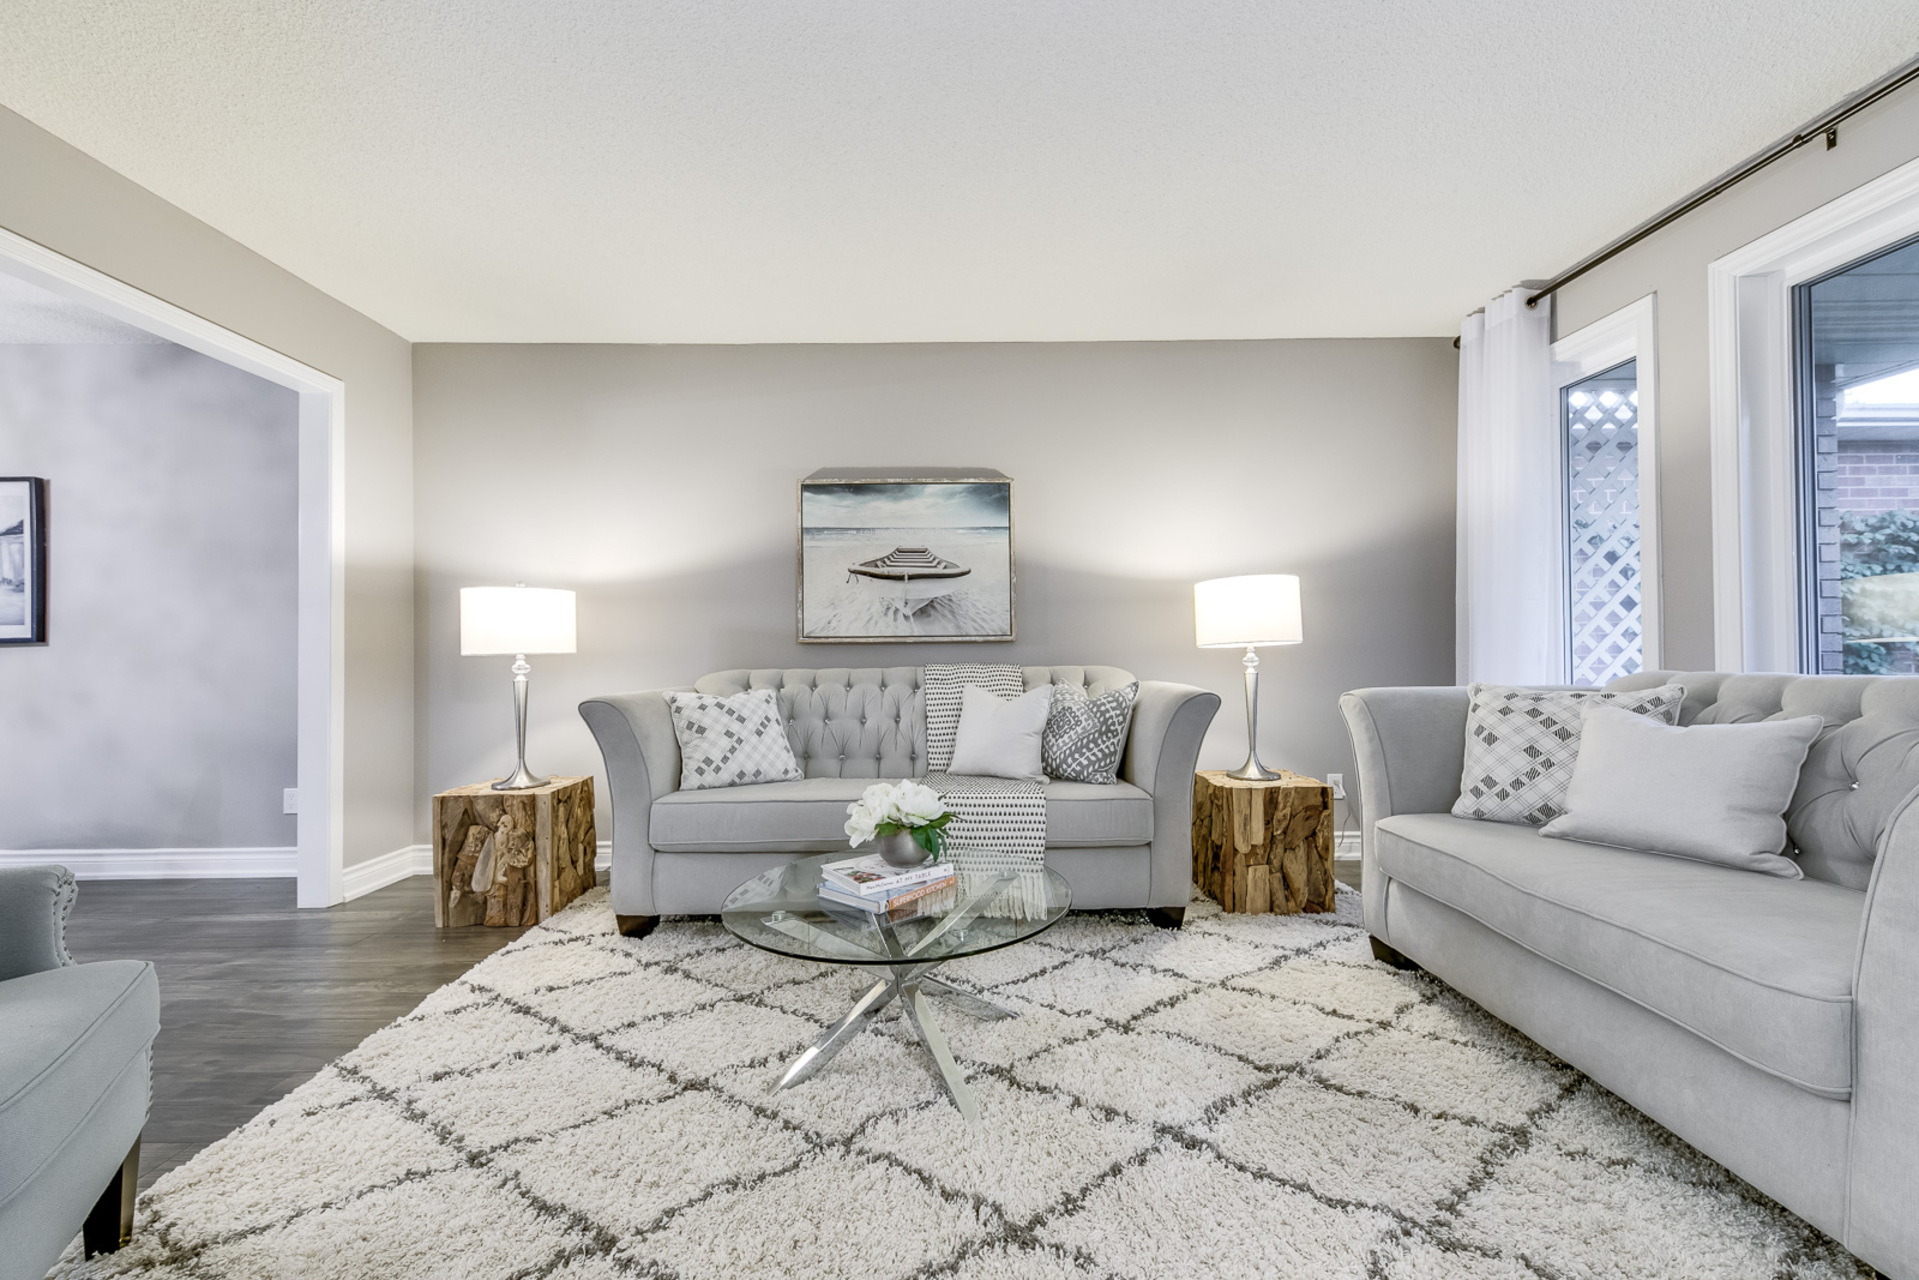 mls-8 at 4246 Wakefield Crescent, Creditview, Mississauga